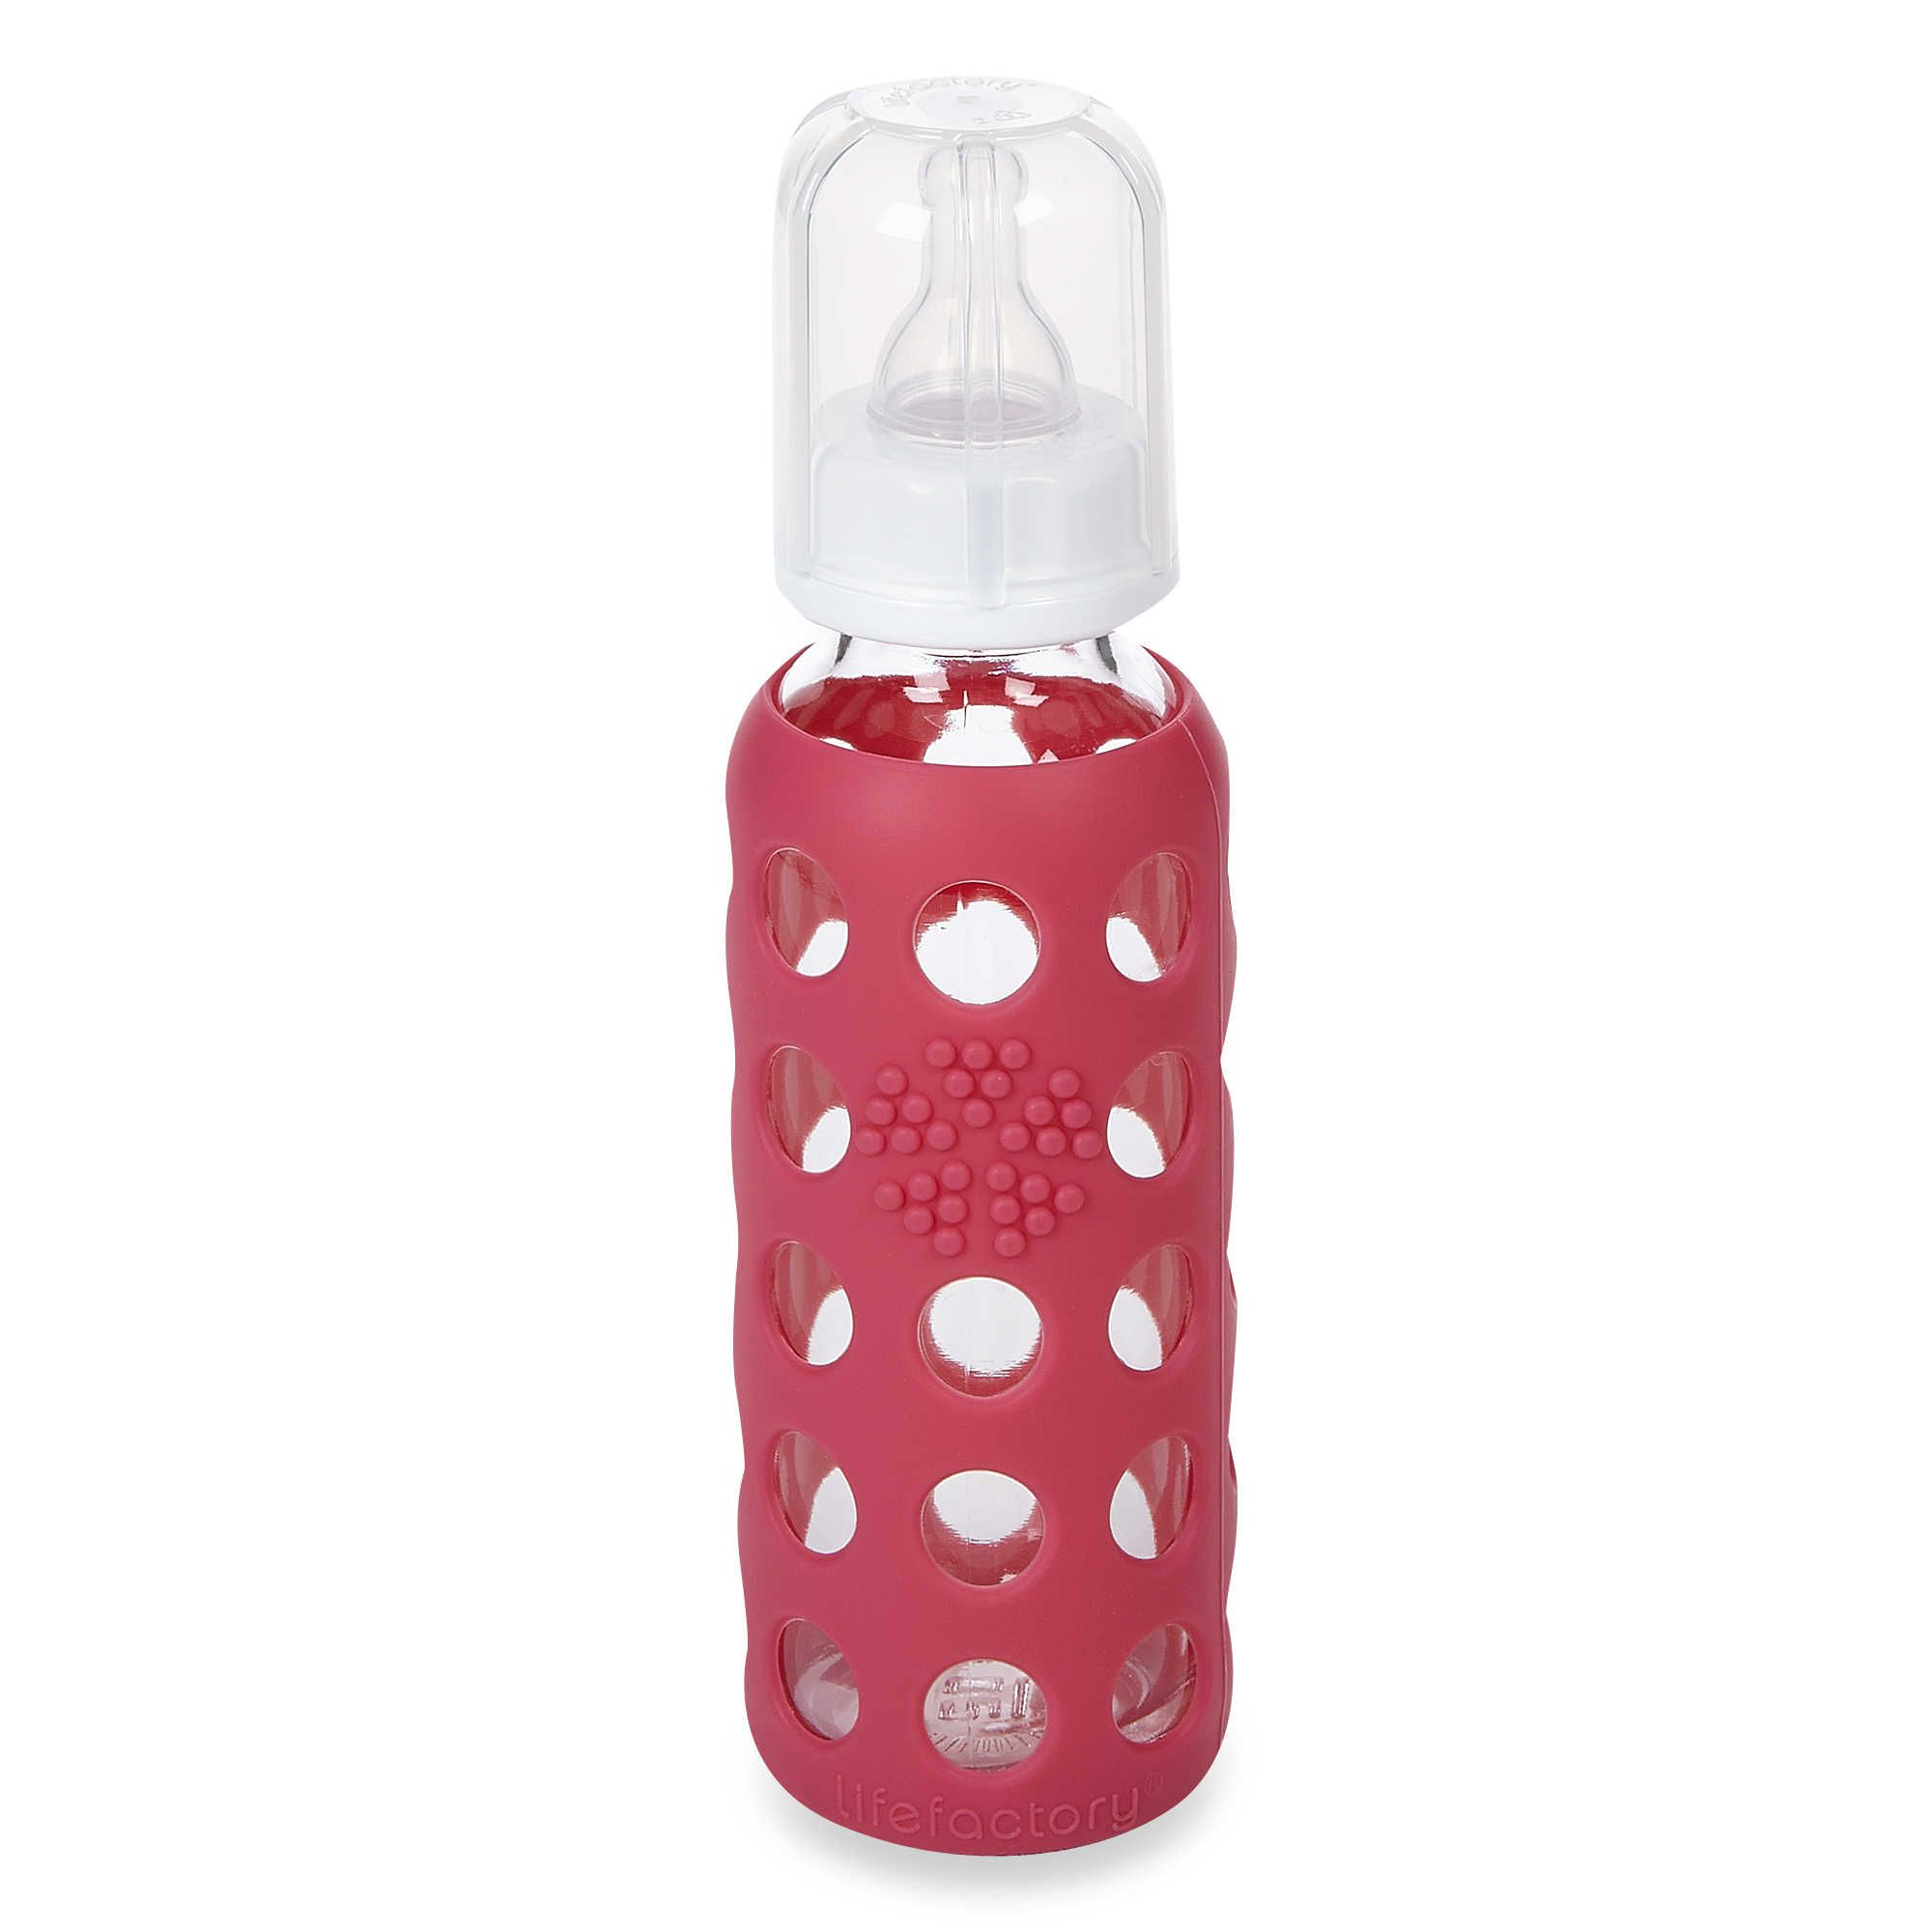 Best With Sleeve: Lifefactory® 9-Ounce Glass Baby Bottle w/Silicone Sleeve